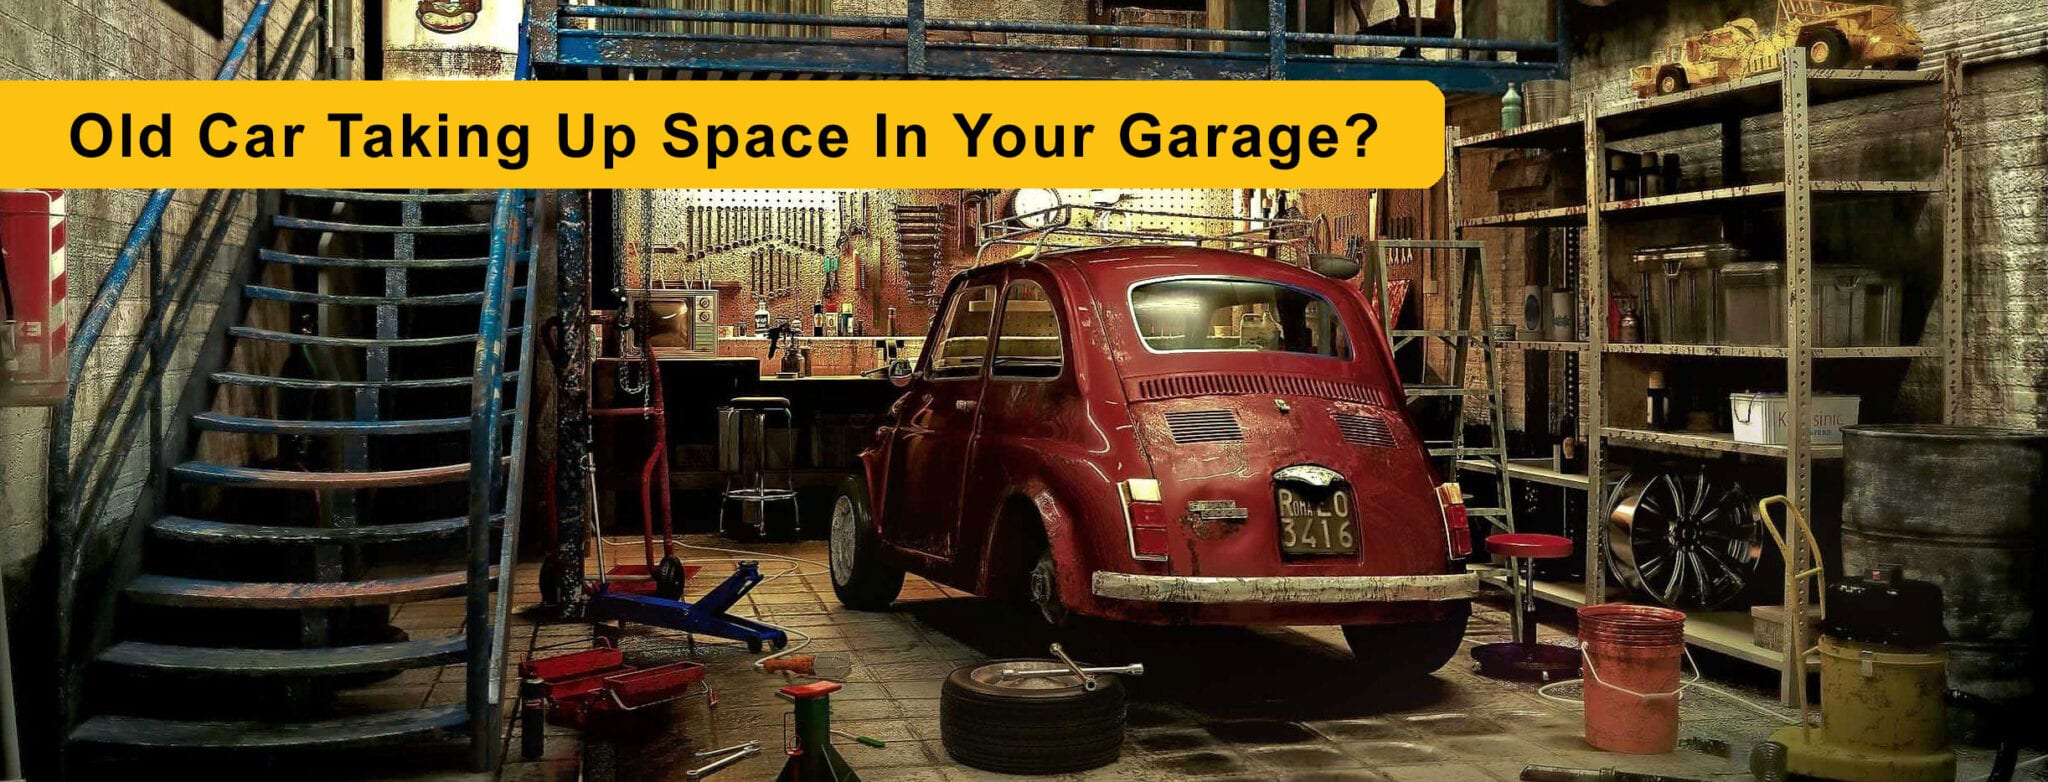 Don't Like That Old Car Taking Up Space In Your Garage?